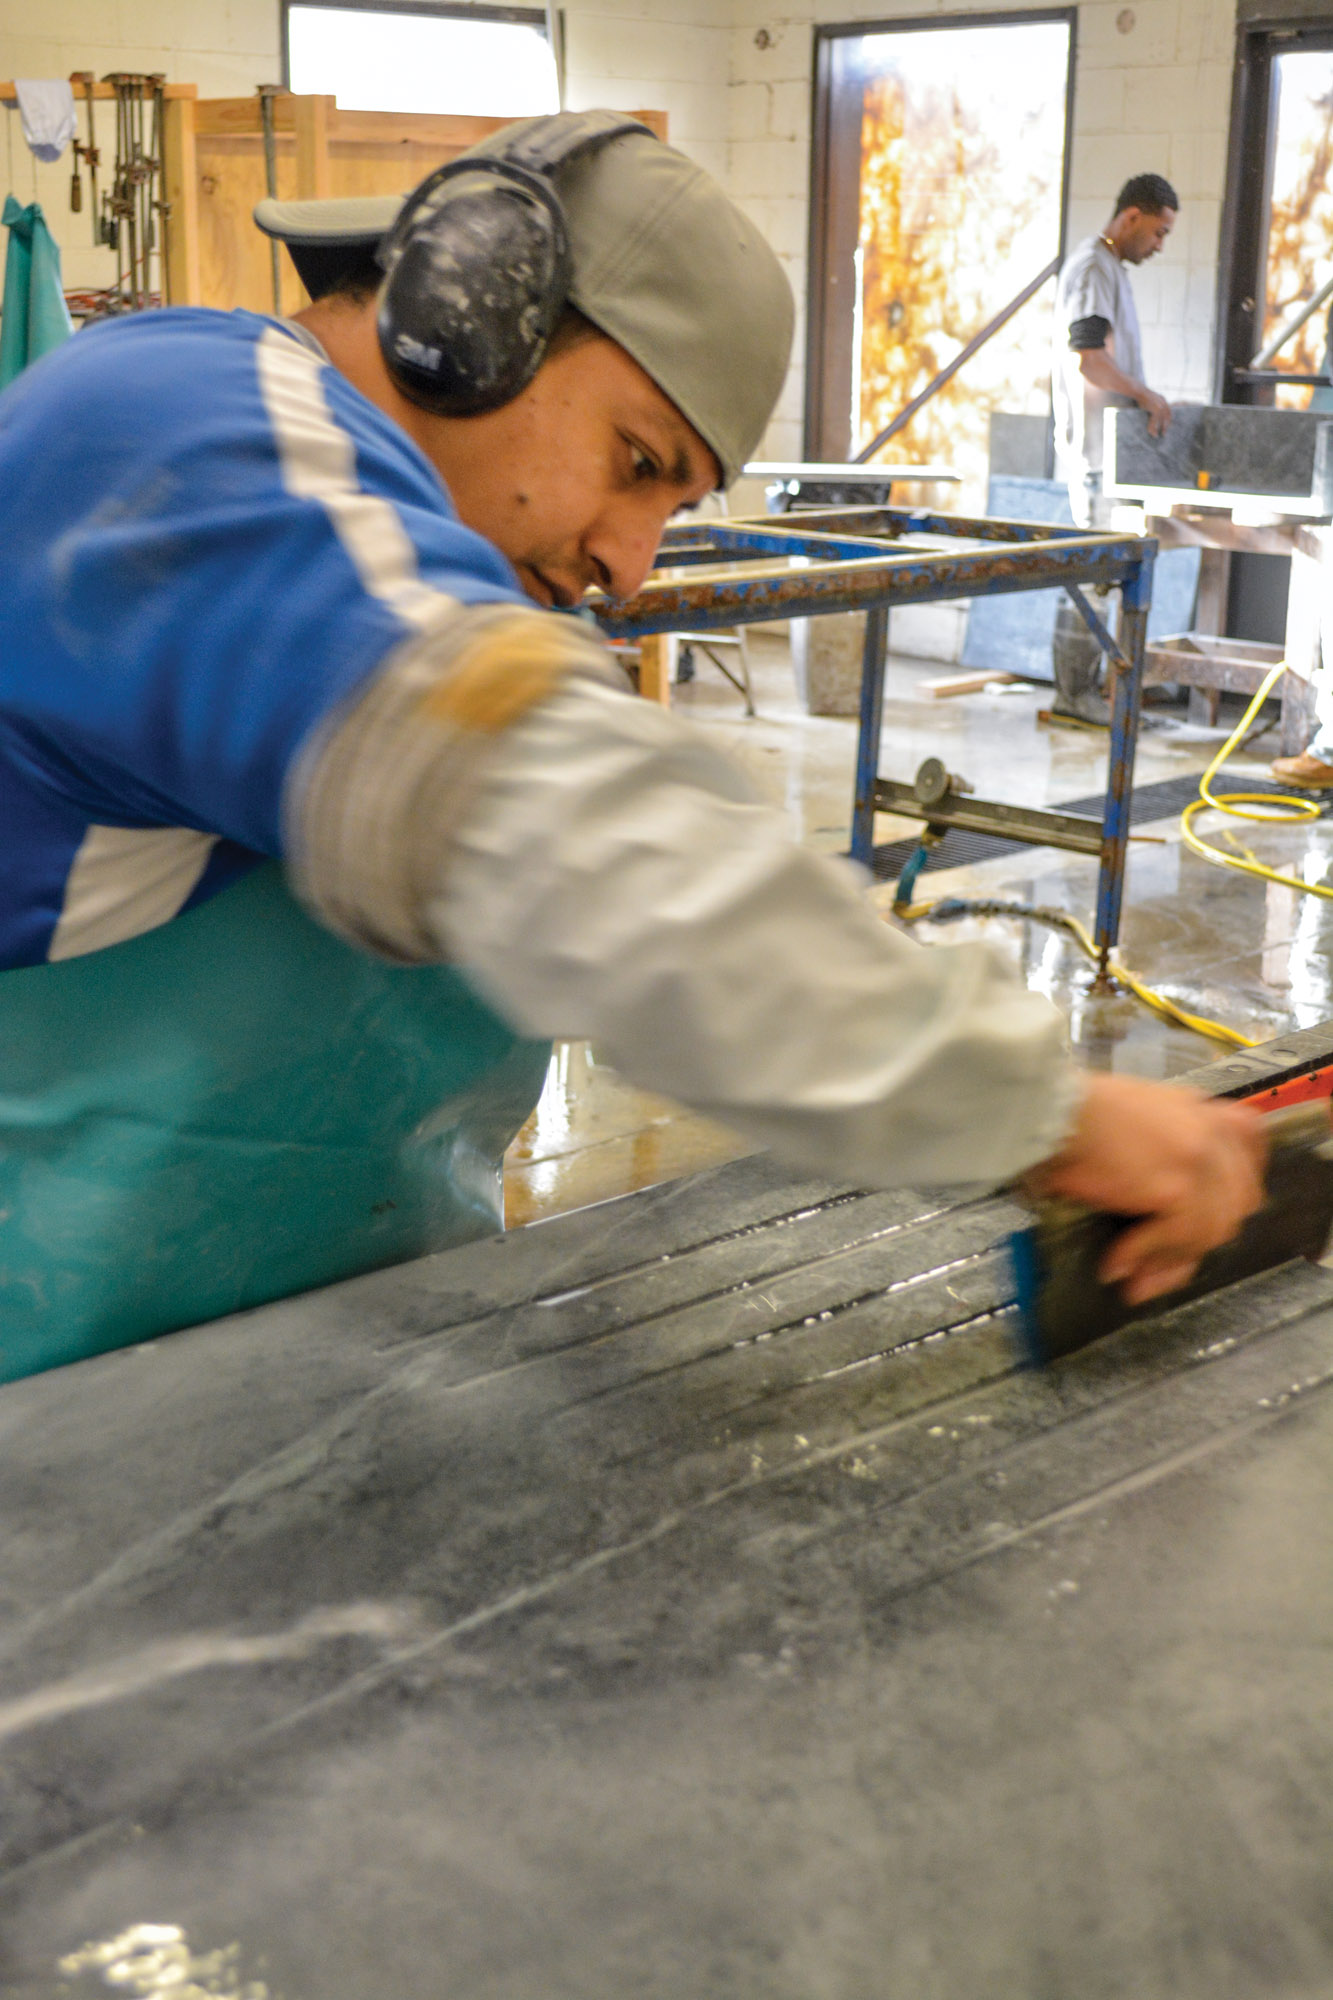 making a grooved countertop